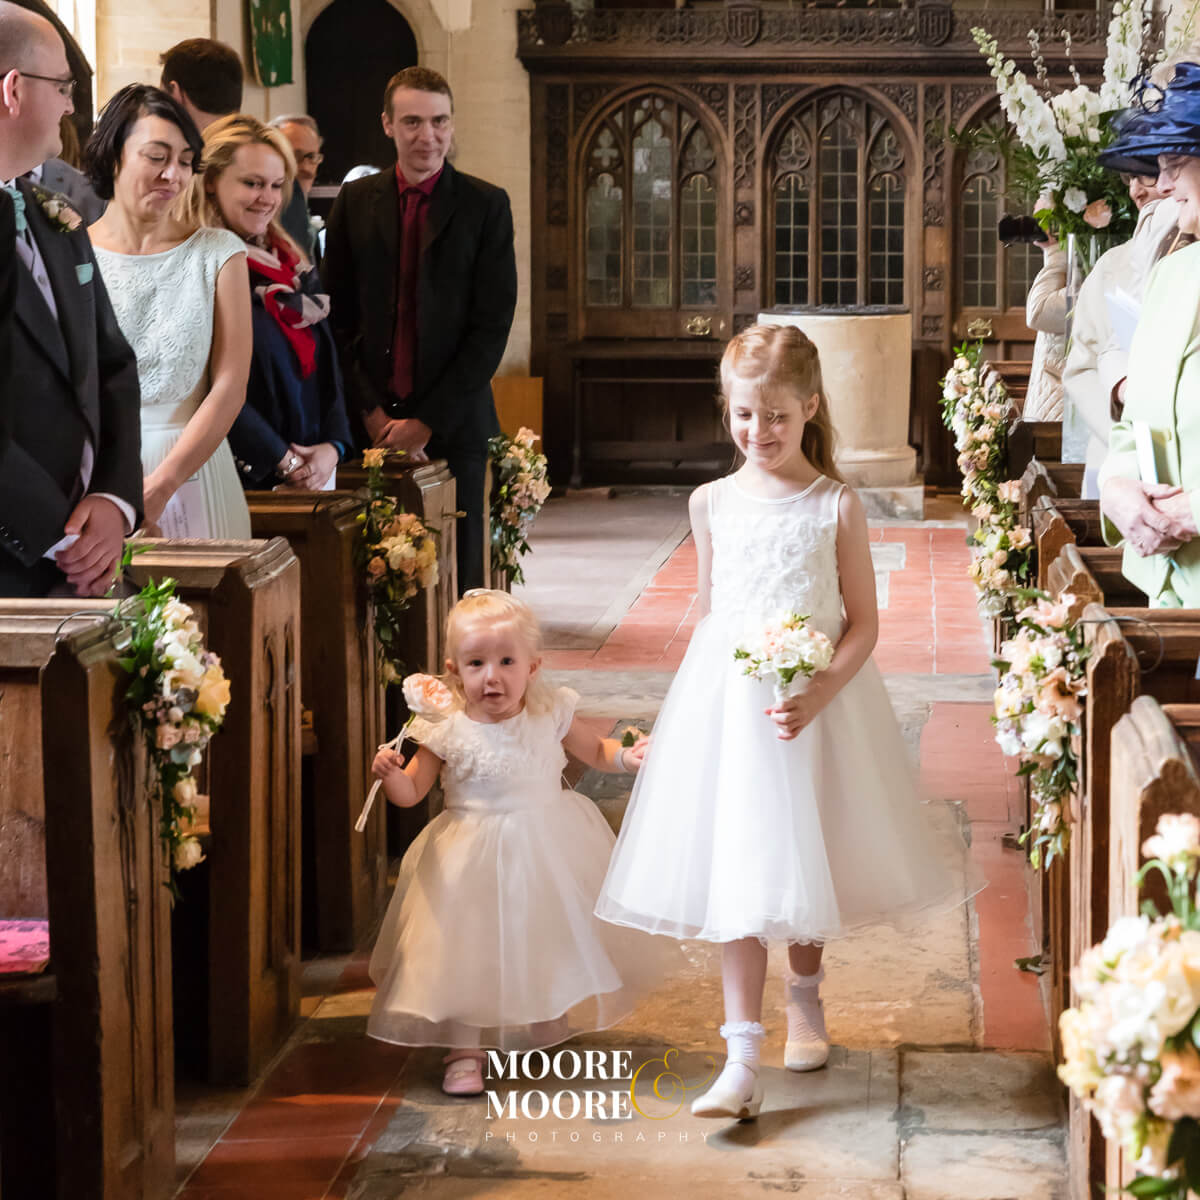 little-ones-steal-the-limelight-at-weddings-13